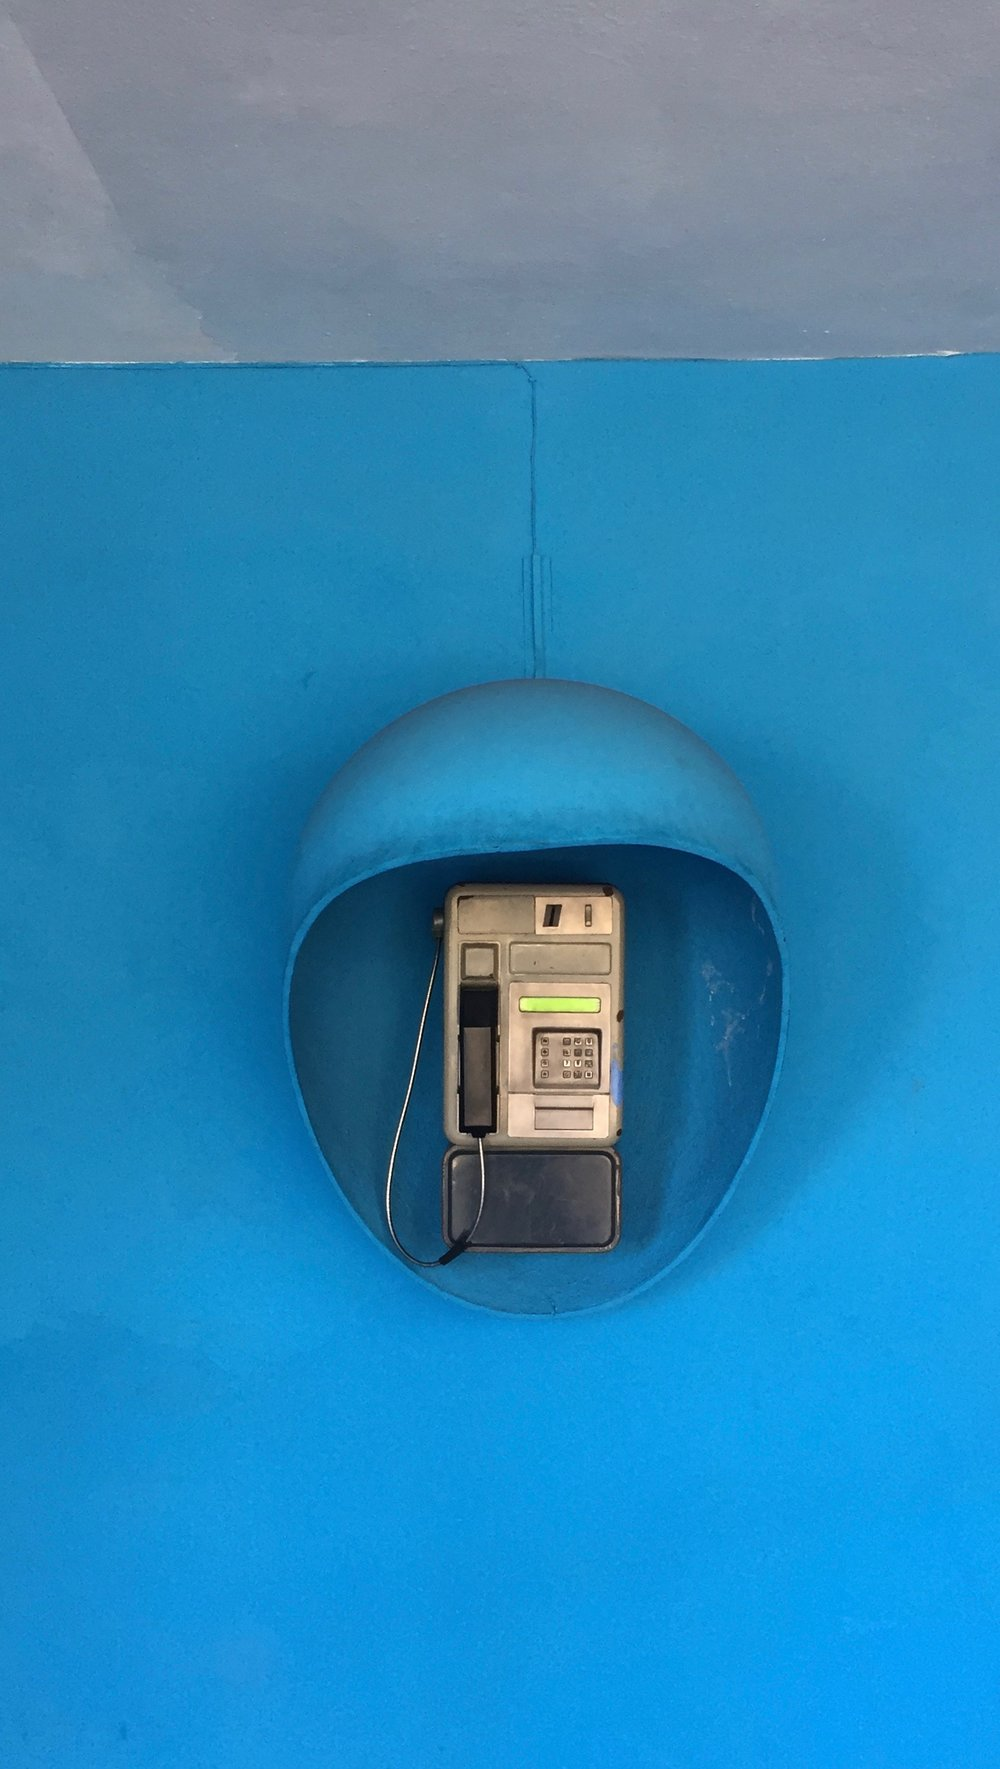 The Cubans have cell phones, but pay phones are a reality in a way that's now unknown in the U.S. or Europe.